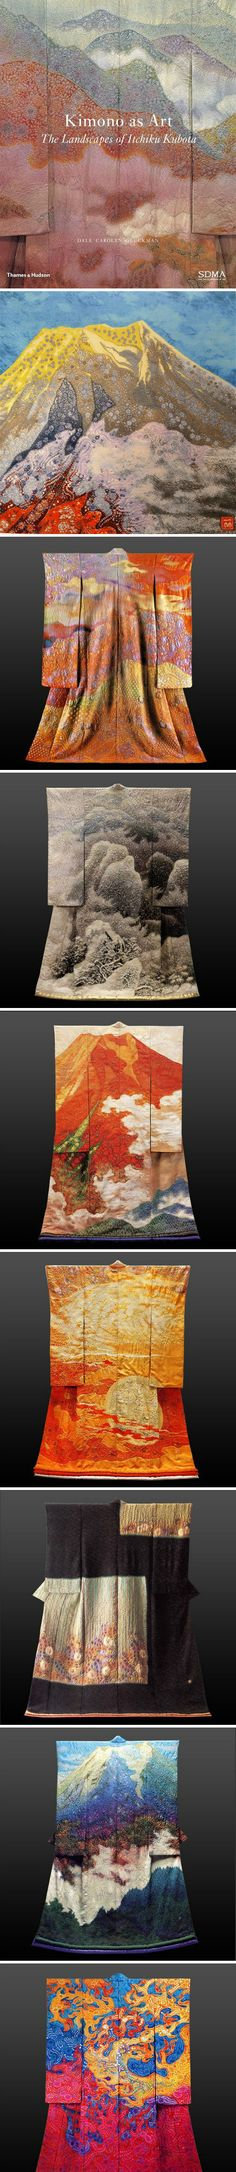 "Images from Publication: Kimono as Art - The landscape of Itchuku Kubota By Dale Carolyn Gluckman ""The first major book on Japanese textile artist Itchiku Kubota, published to accompany a touring exhibition."" #PurelyInspiration #ArtonTap"